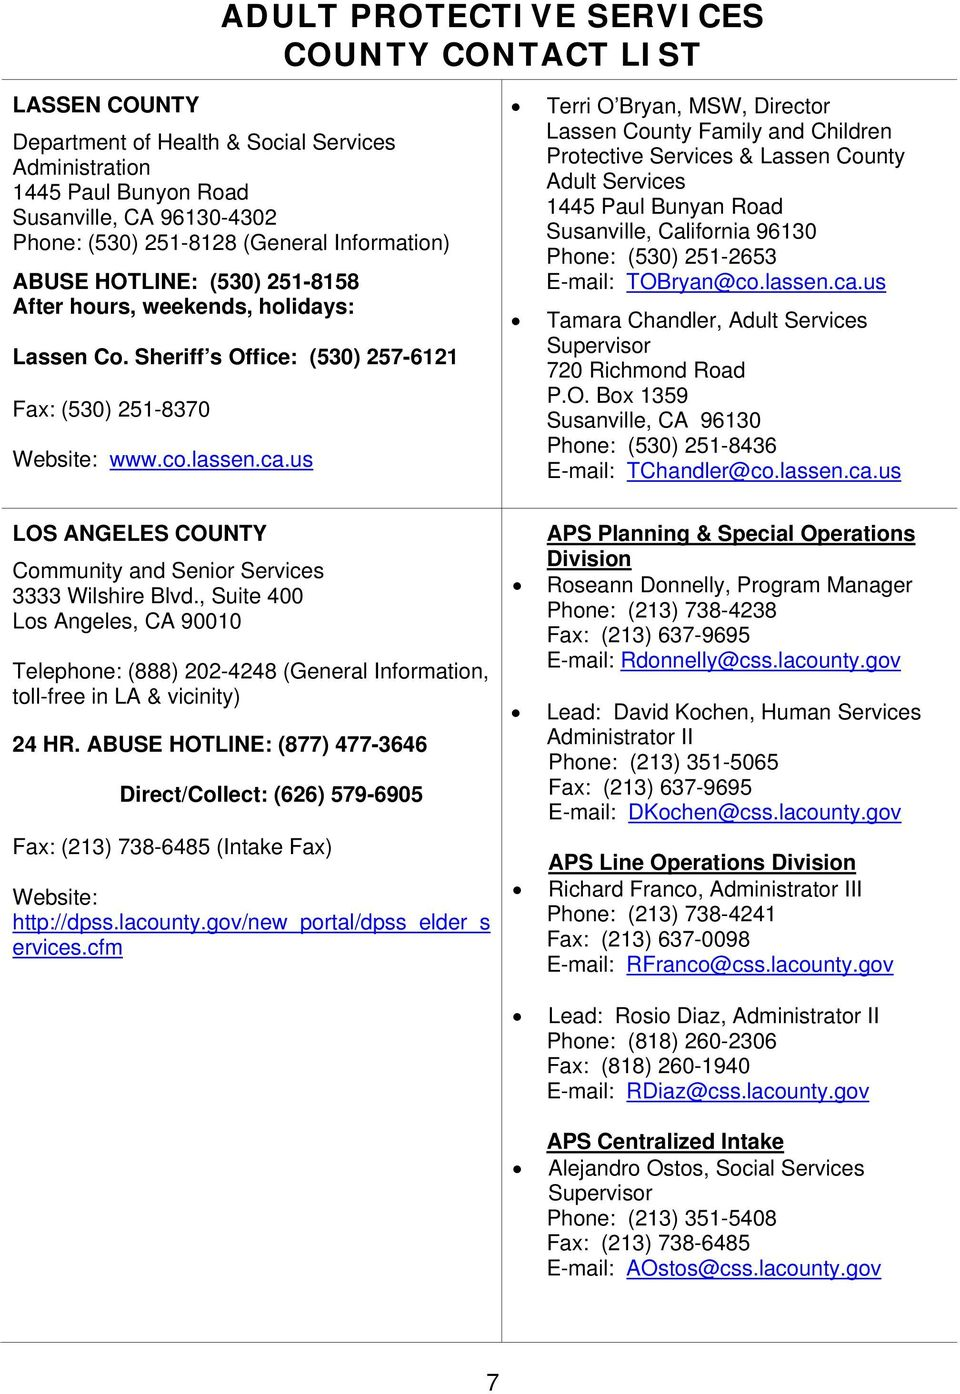 adult california protective services